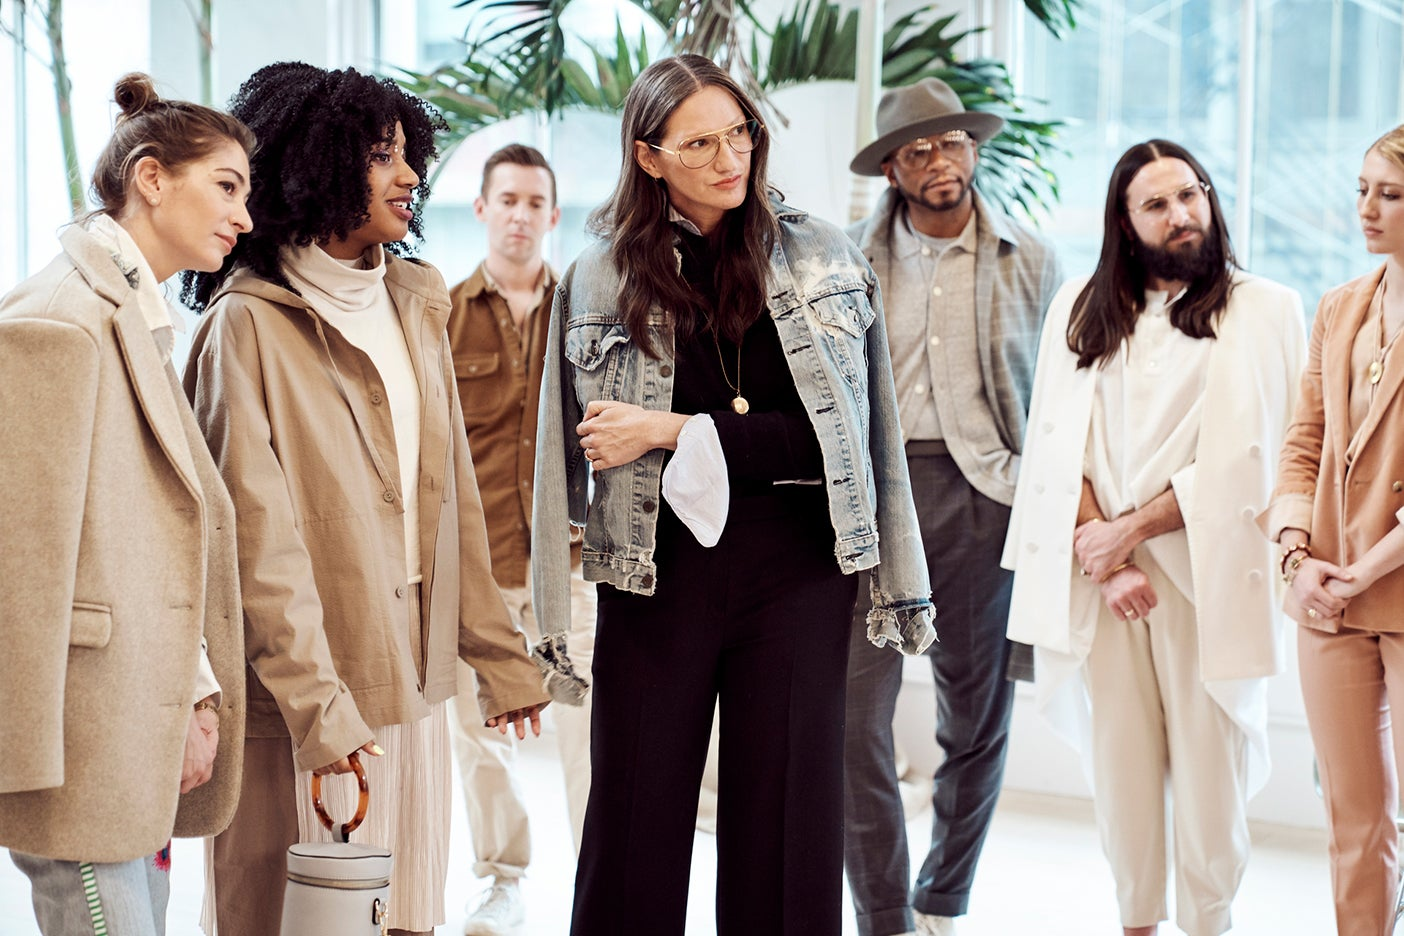 Jenna Lyons and contestants of her show